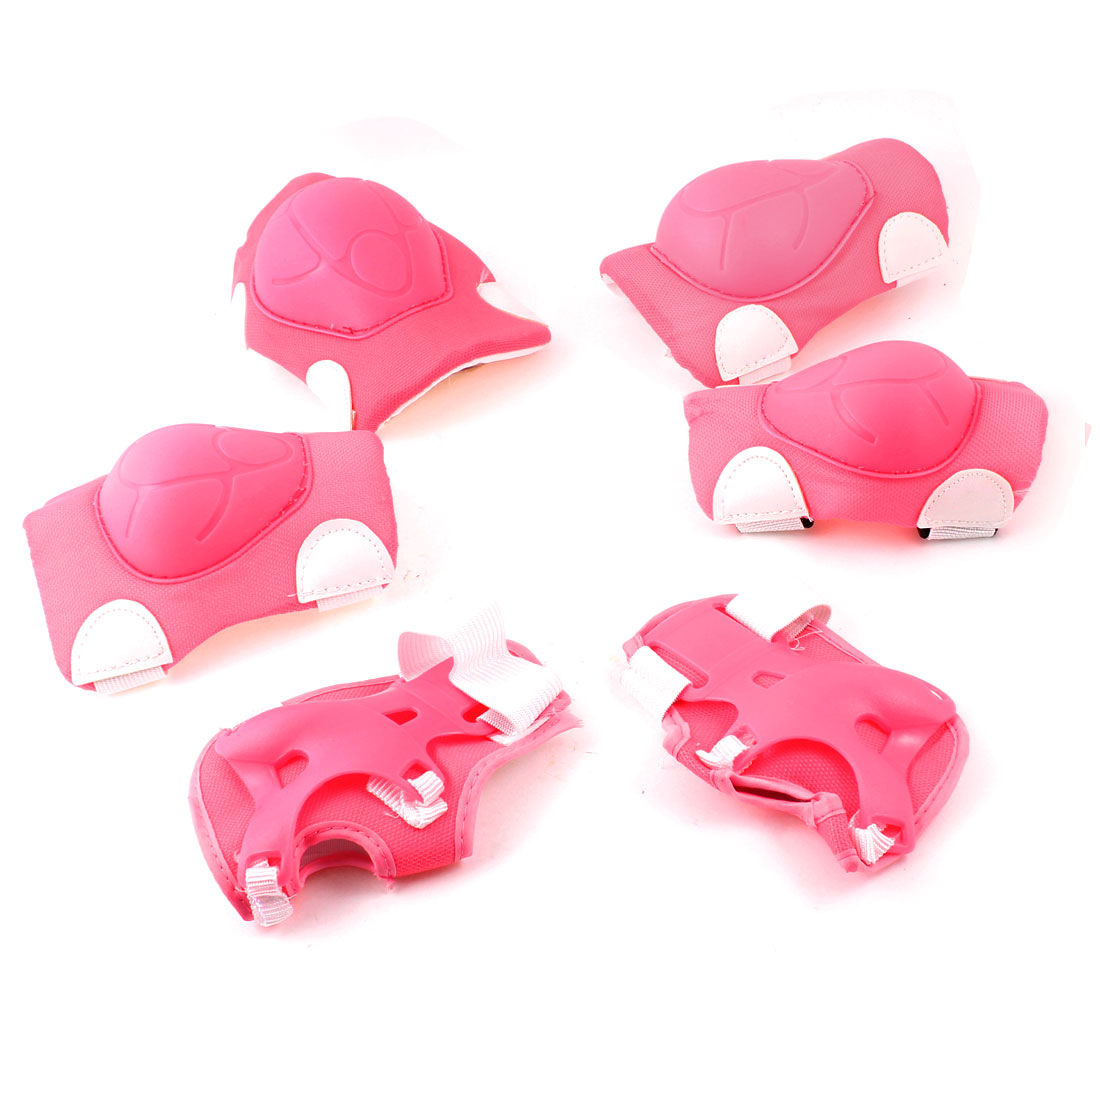 Children Skating Elbow Knee Palm Support Protector White Fuchsia 6 in 1 Set